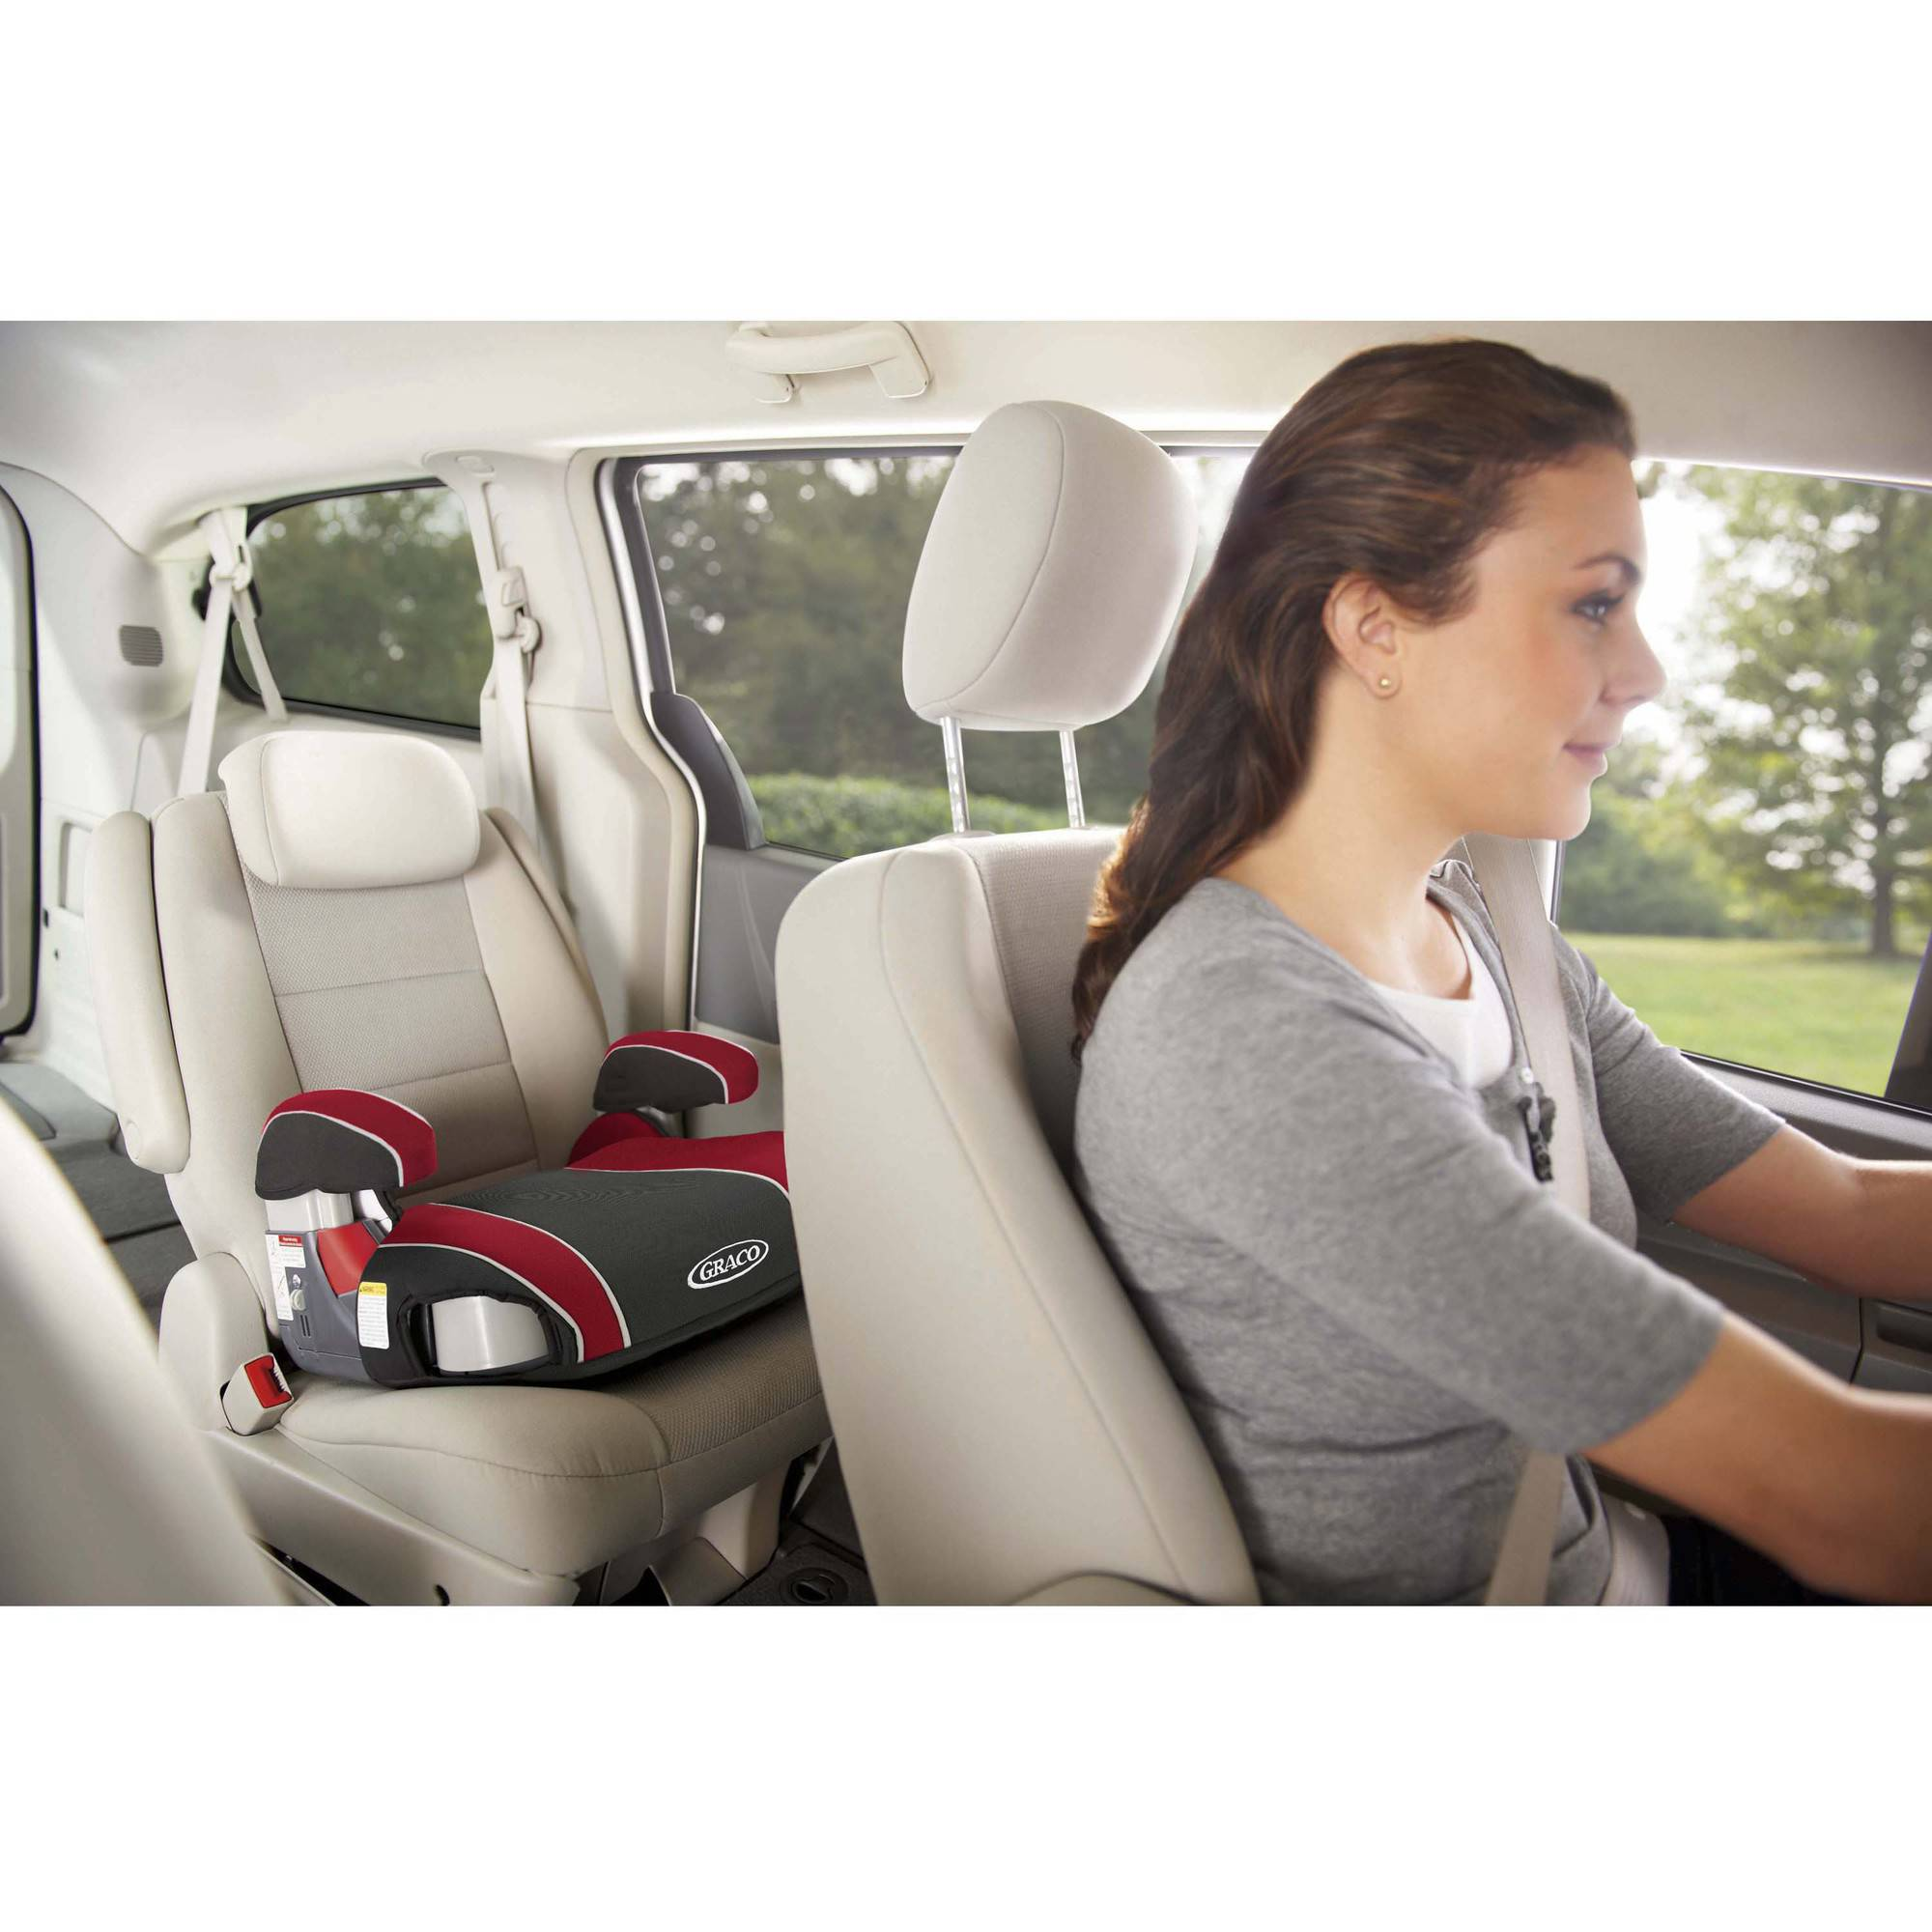 Graco TurboBooster Backless Booster Car Seat, Claire - Walmart.com